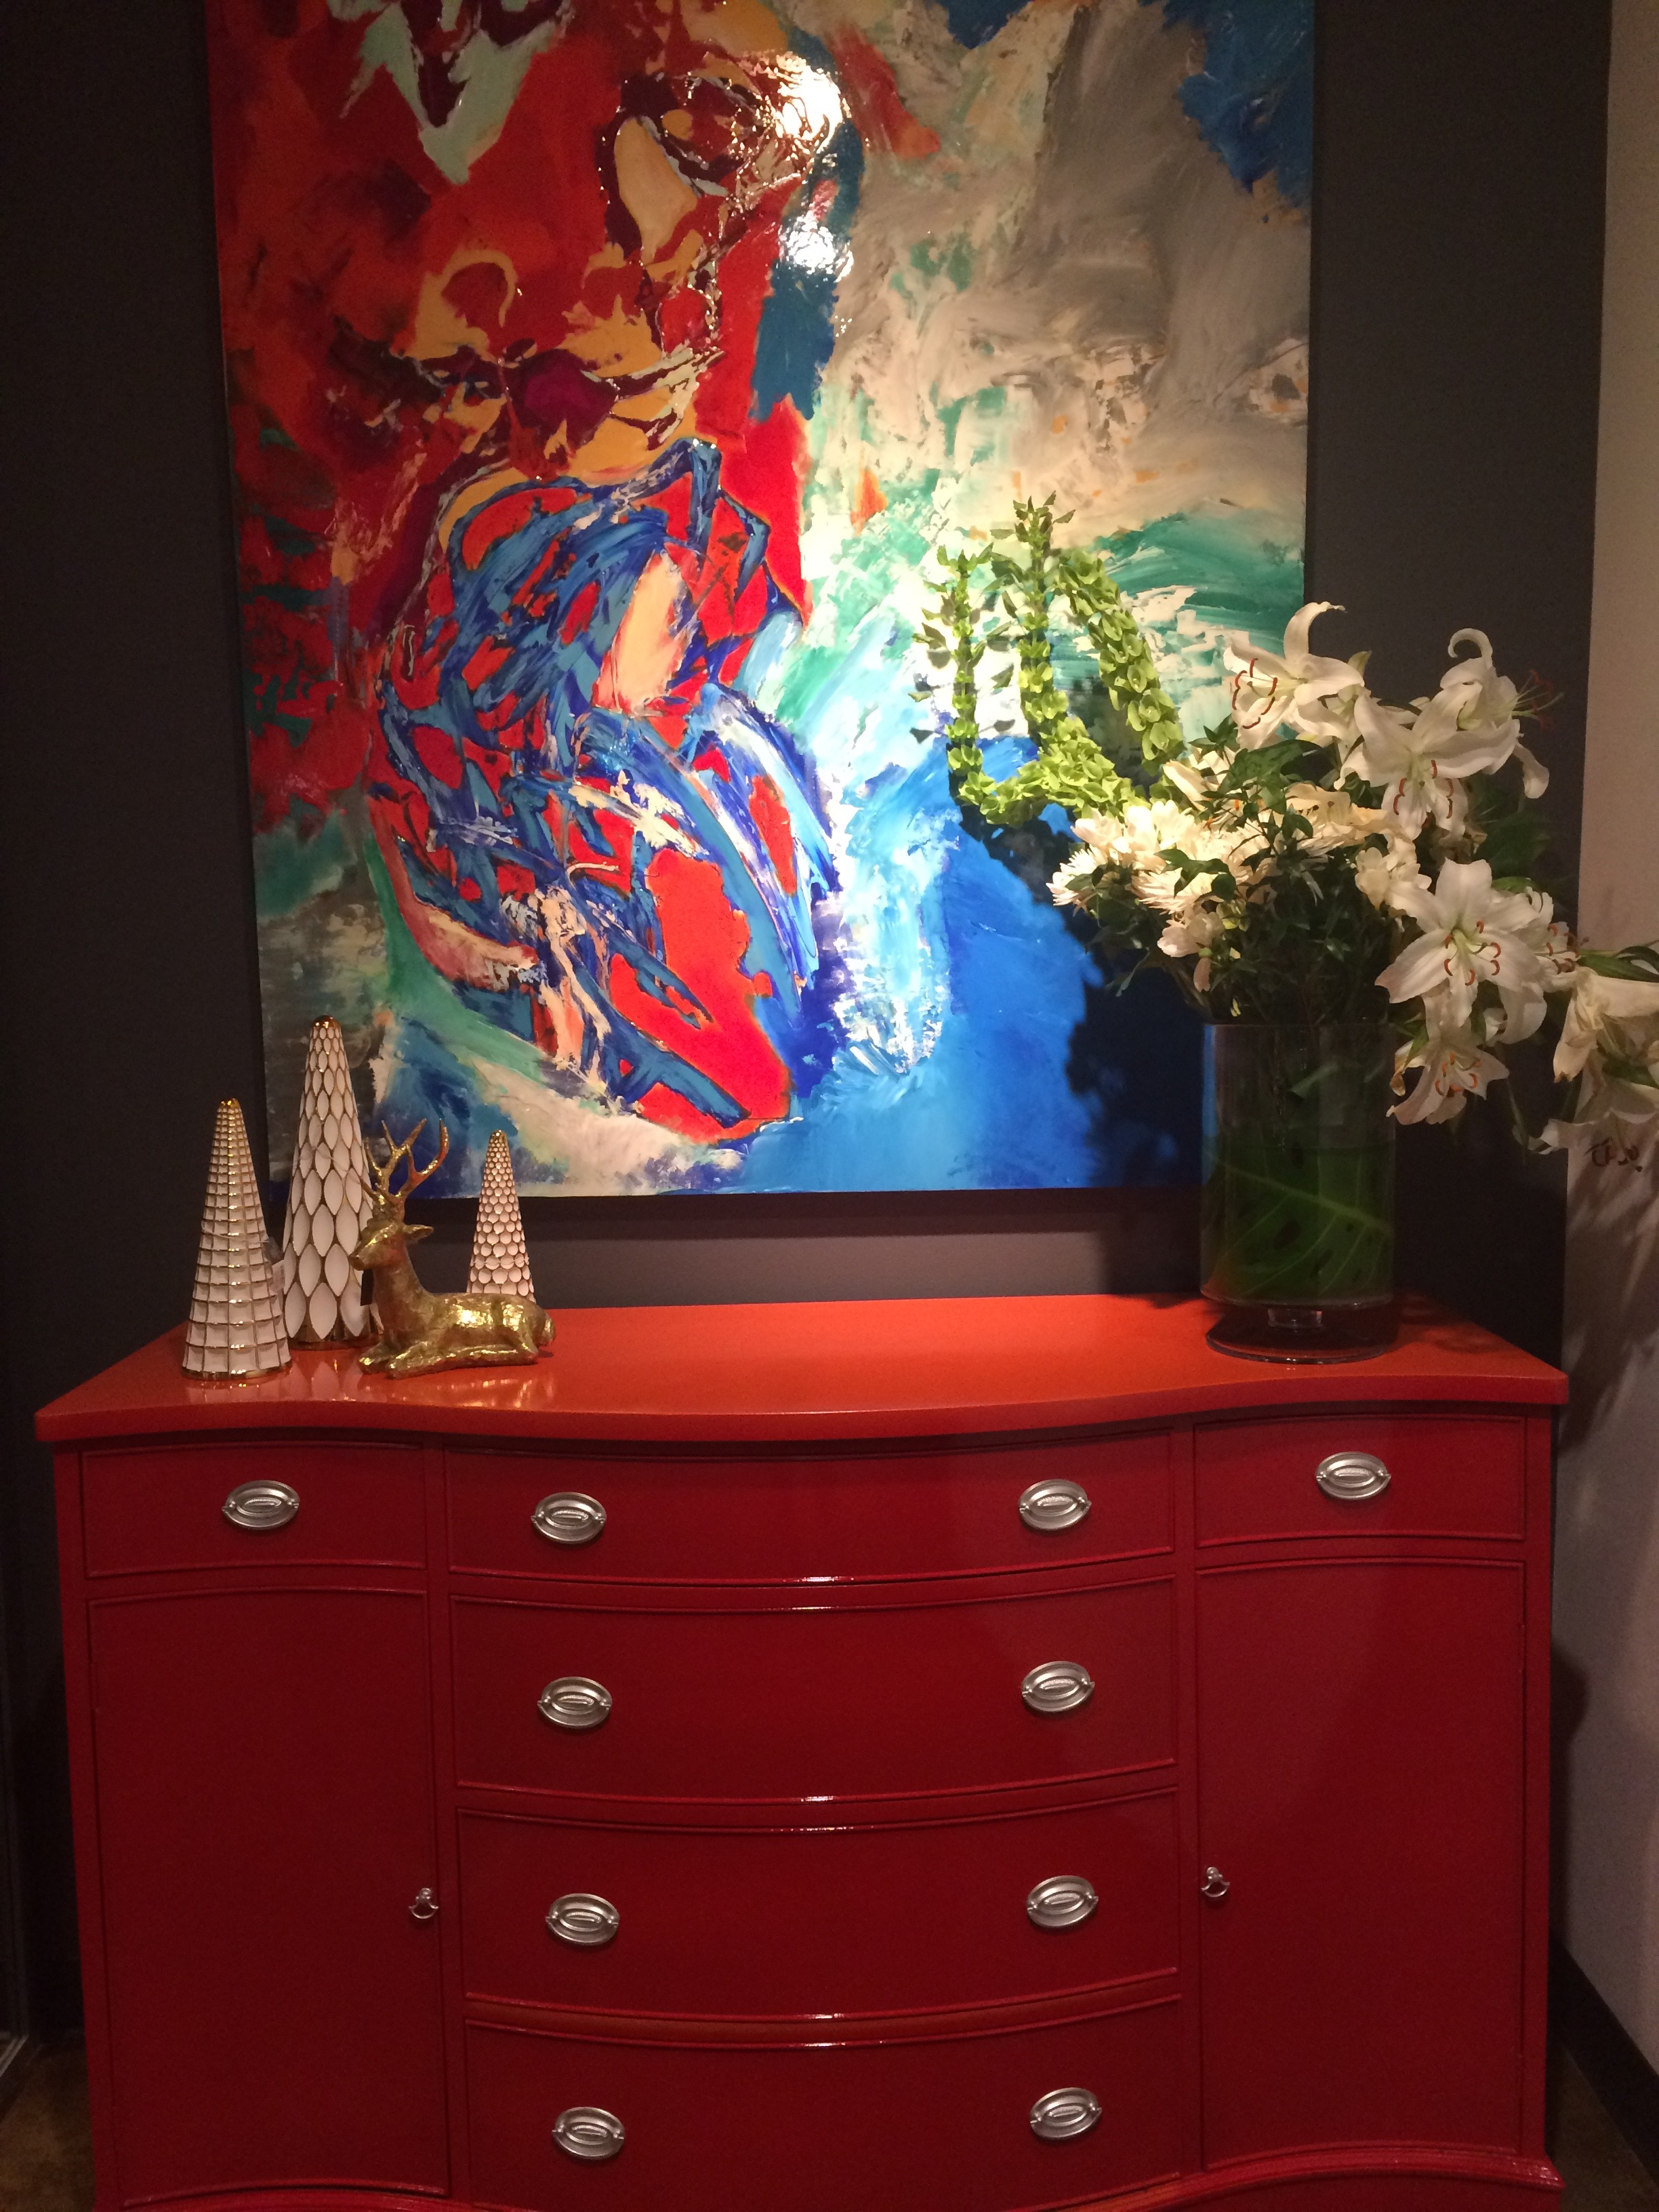 We can help you fall in love with your home again  Reinvigorate your home  furnishings through re purposing and styling. Home Styling   Styled   Organized